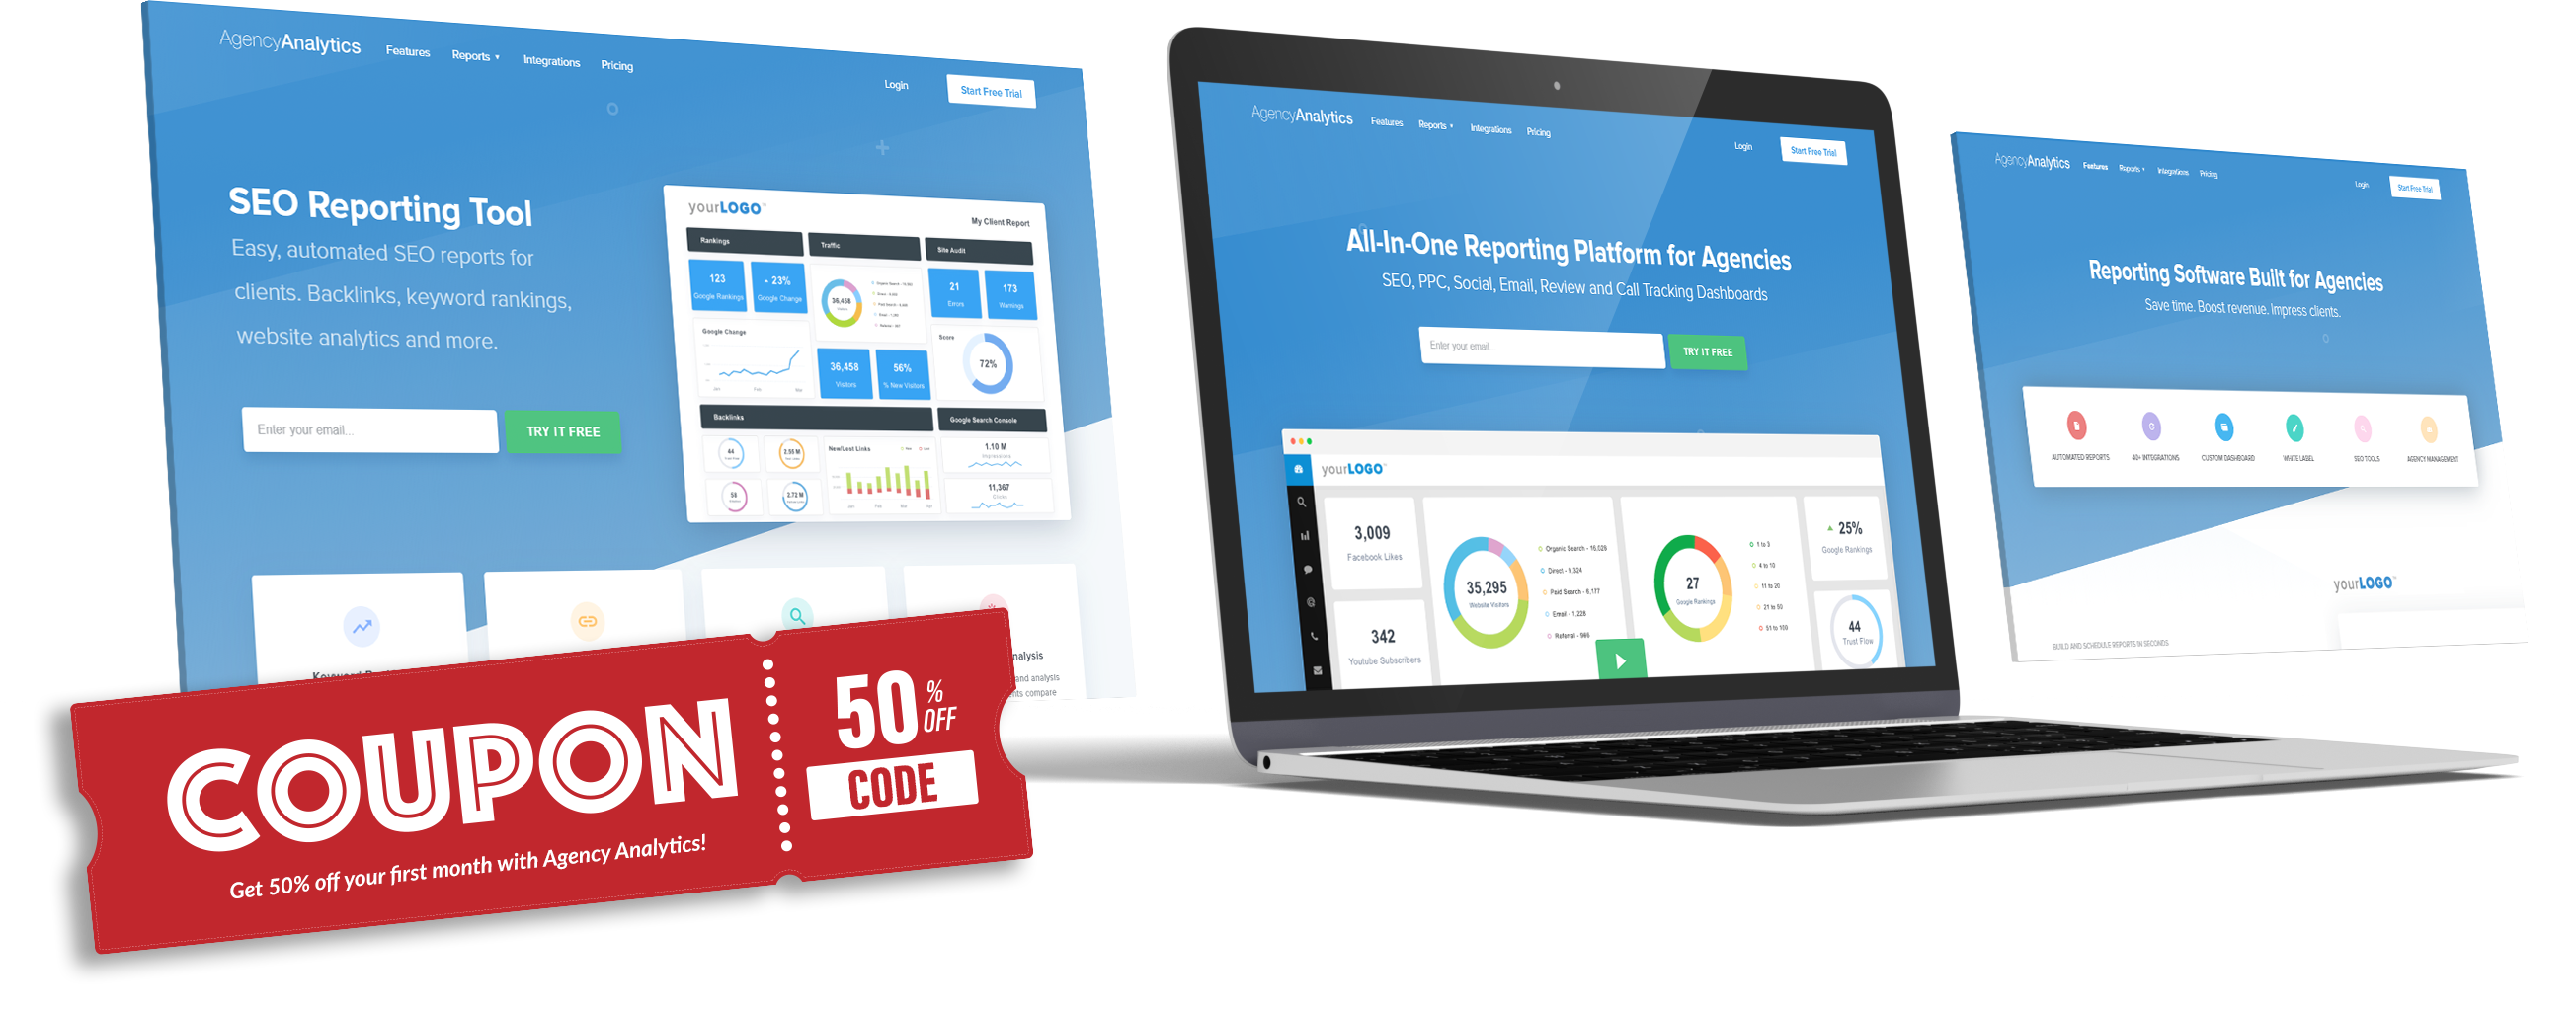 50% OFF Agency Analytics Coupon Code